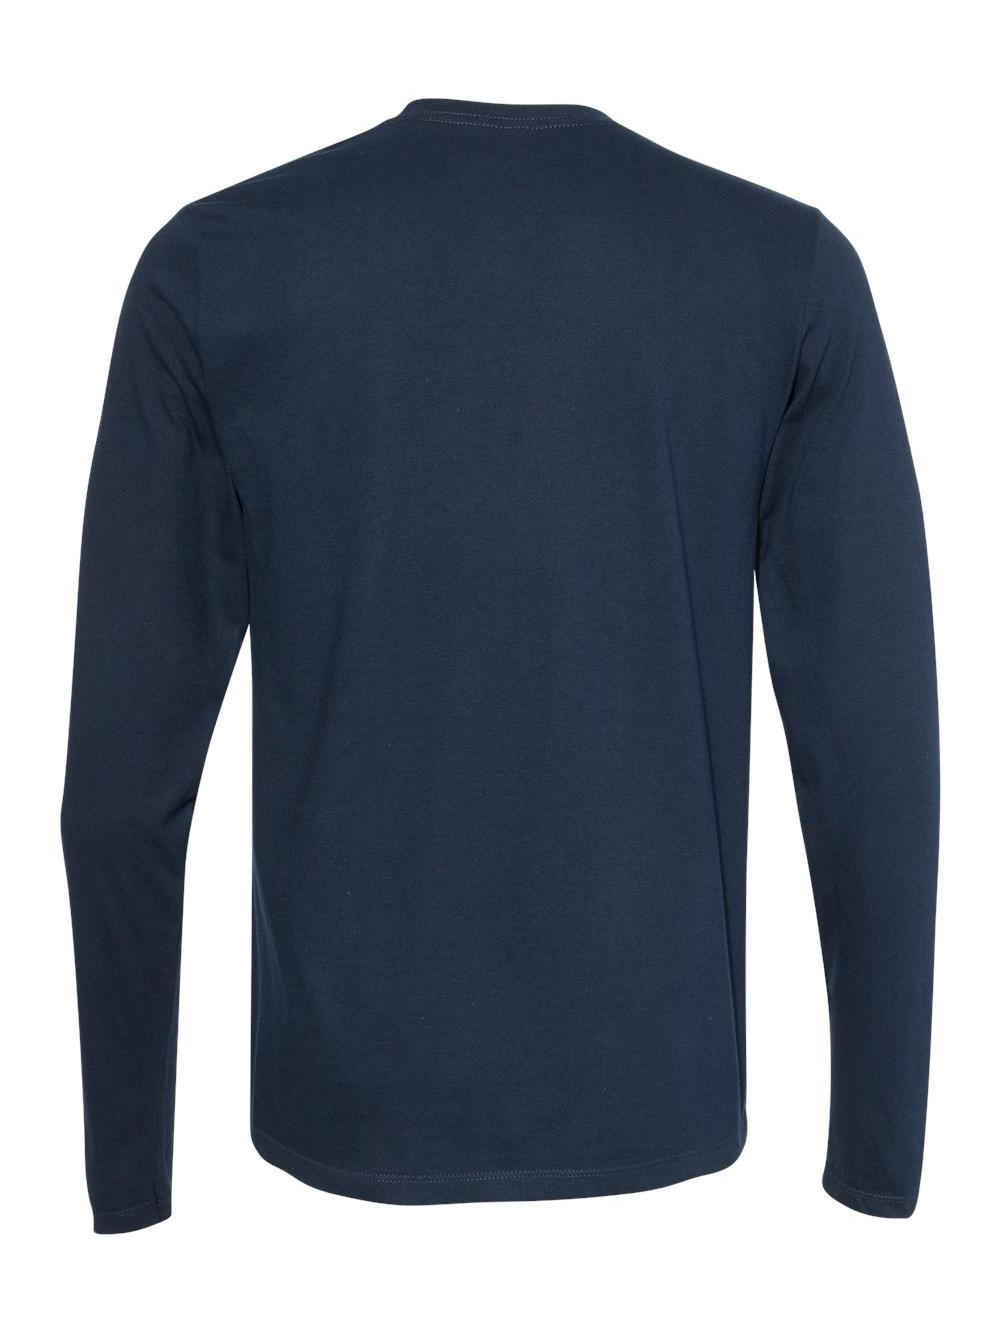 ALSTYLE-Ultimate-Long-Sleeve-T-Shirt-5304 thumbnail 14